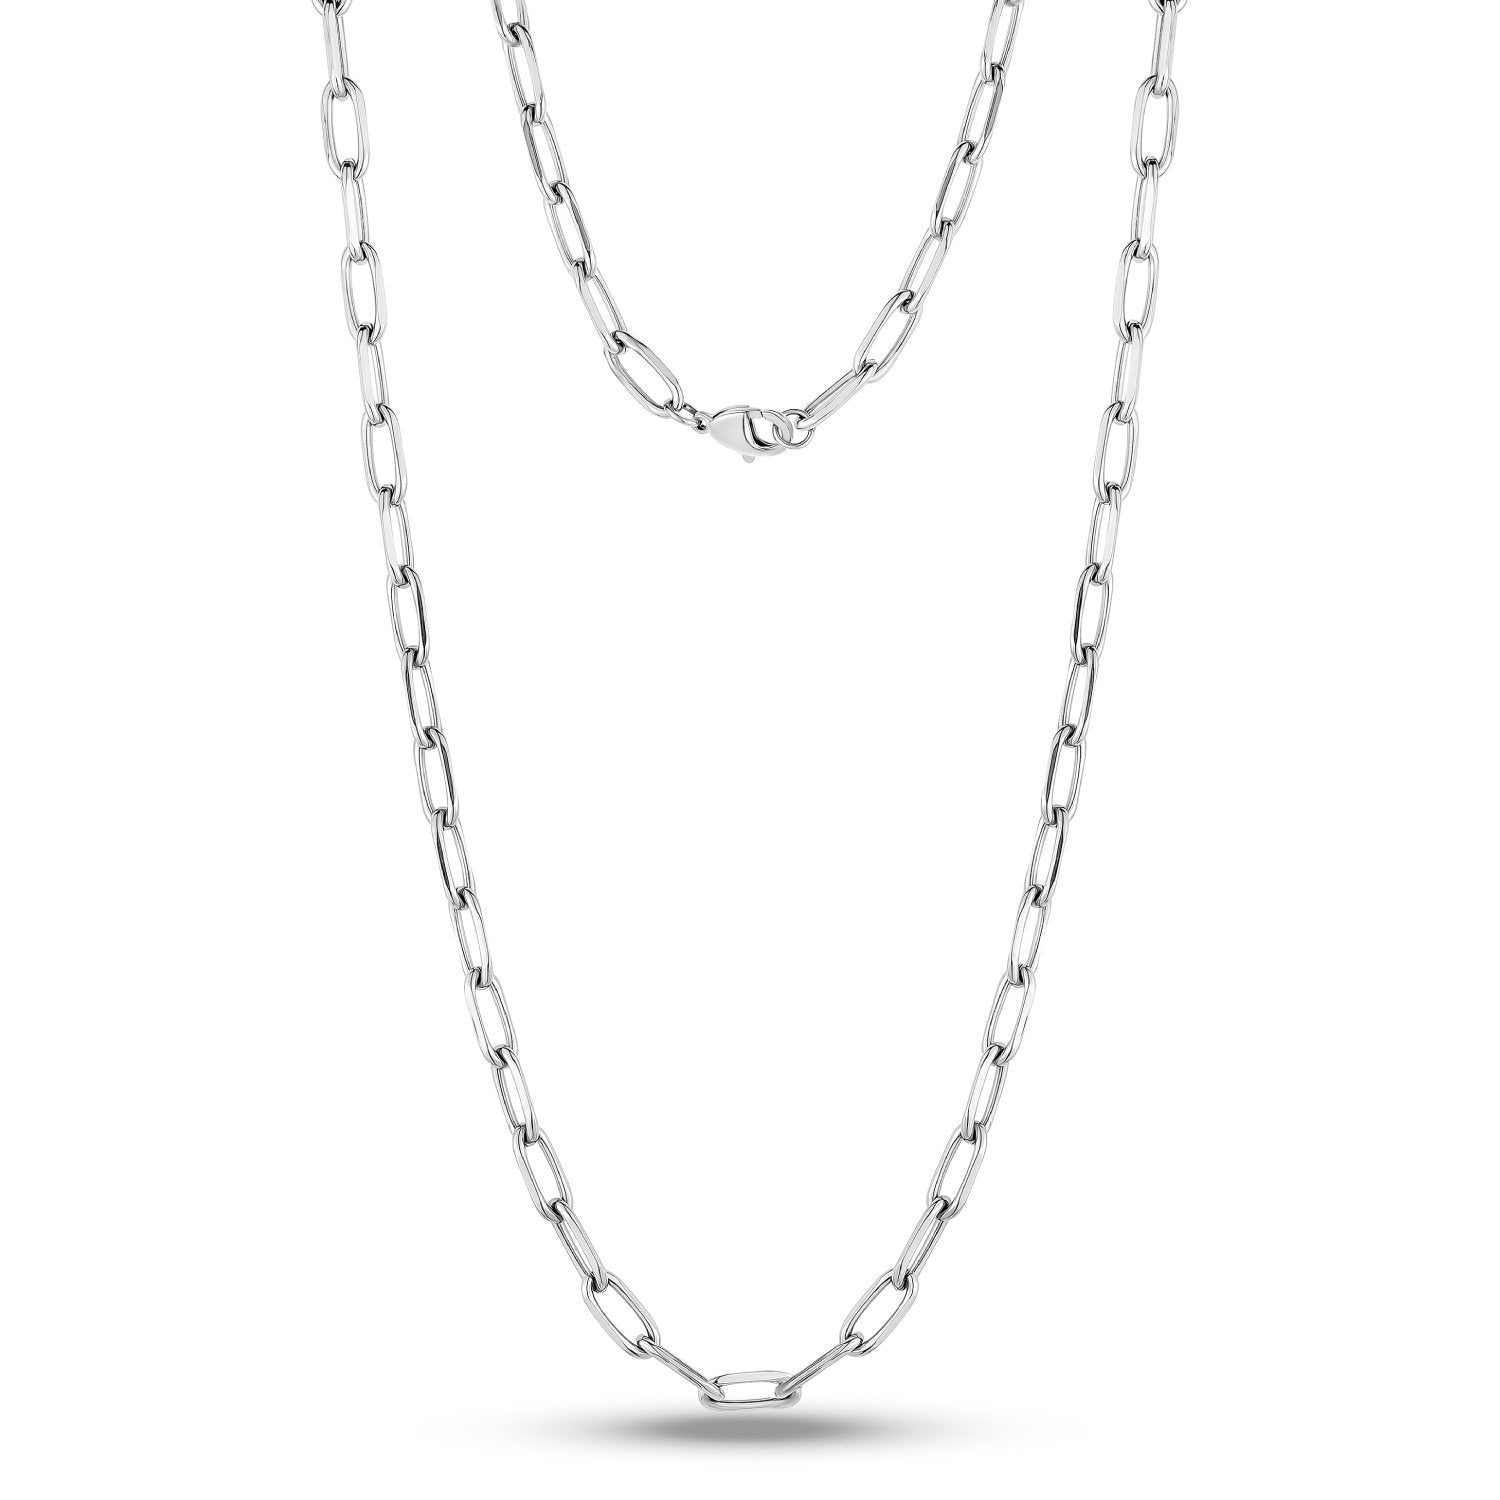 Women's Necklaces - Stainless Steel Paper Clip Chain Necklace